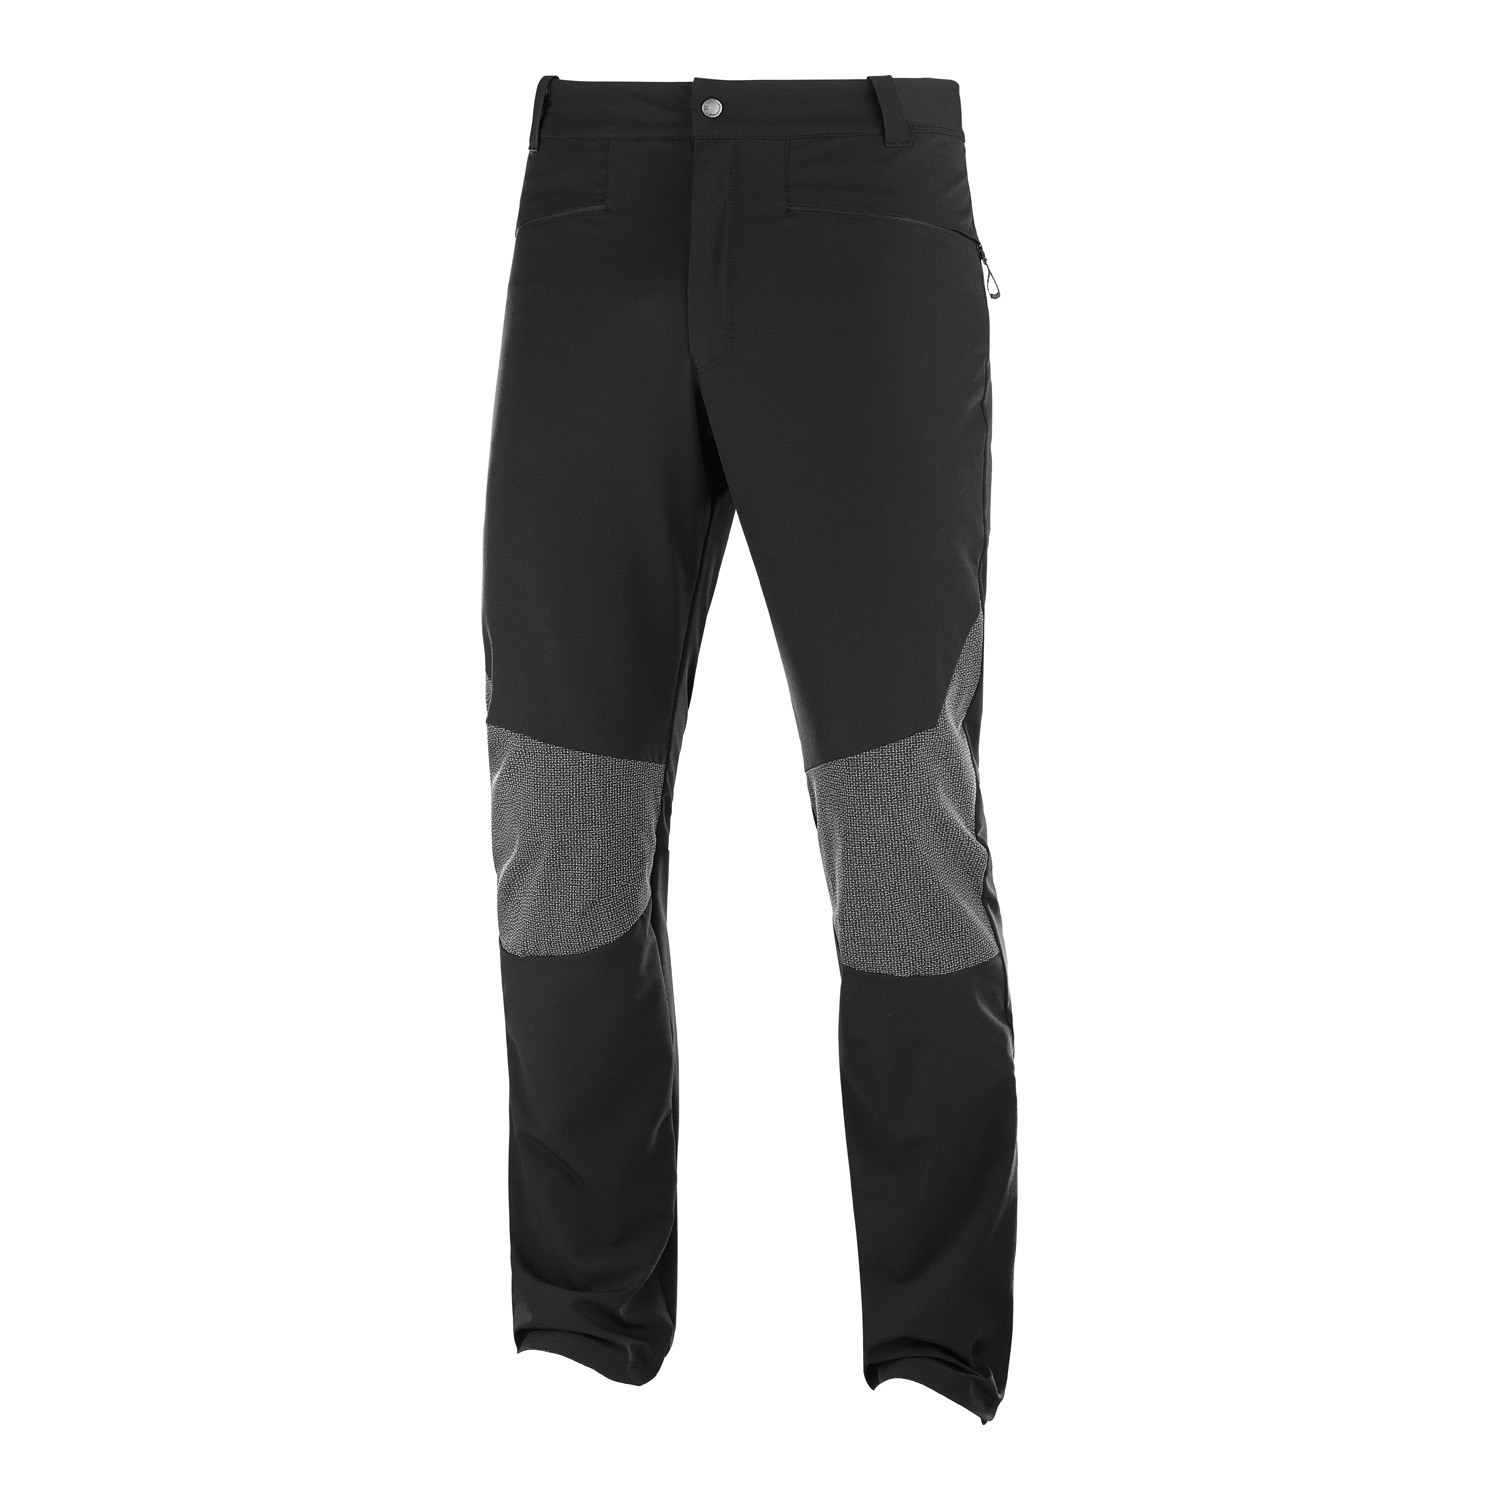 WAYFARER AS ALPINE PANT M